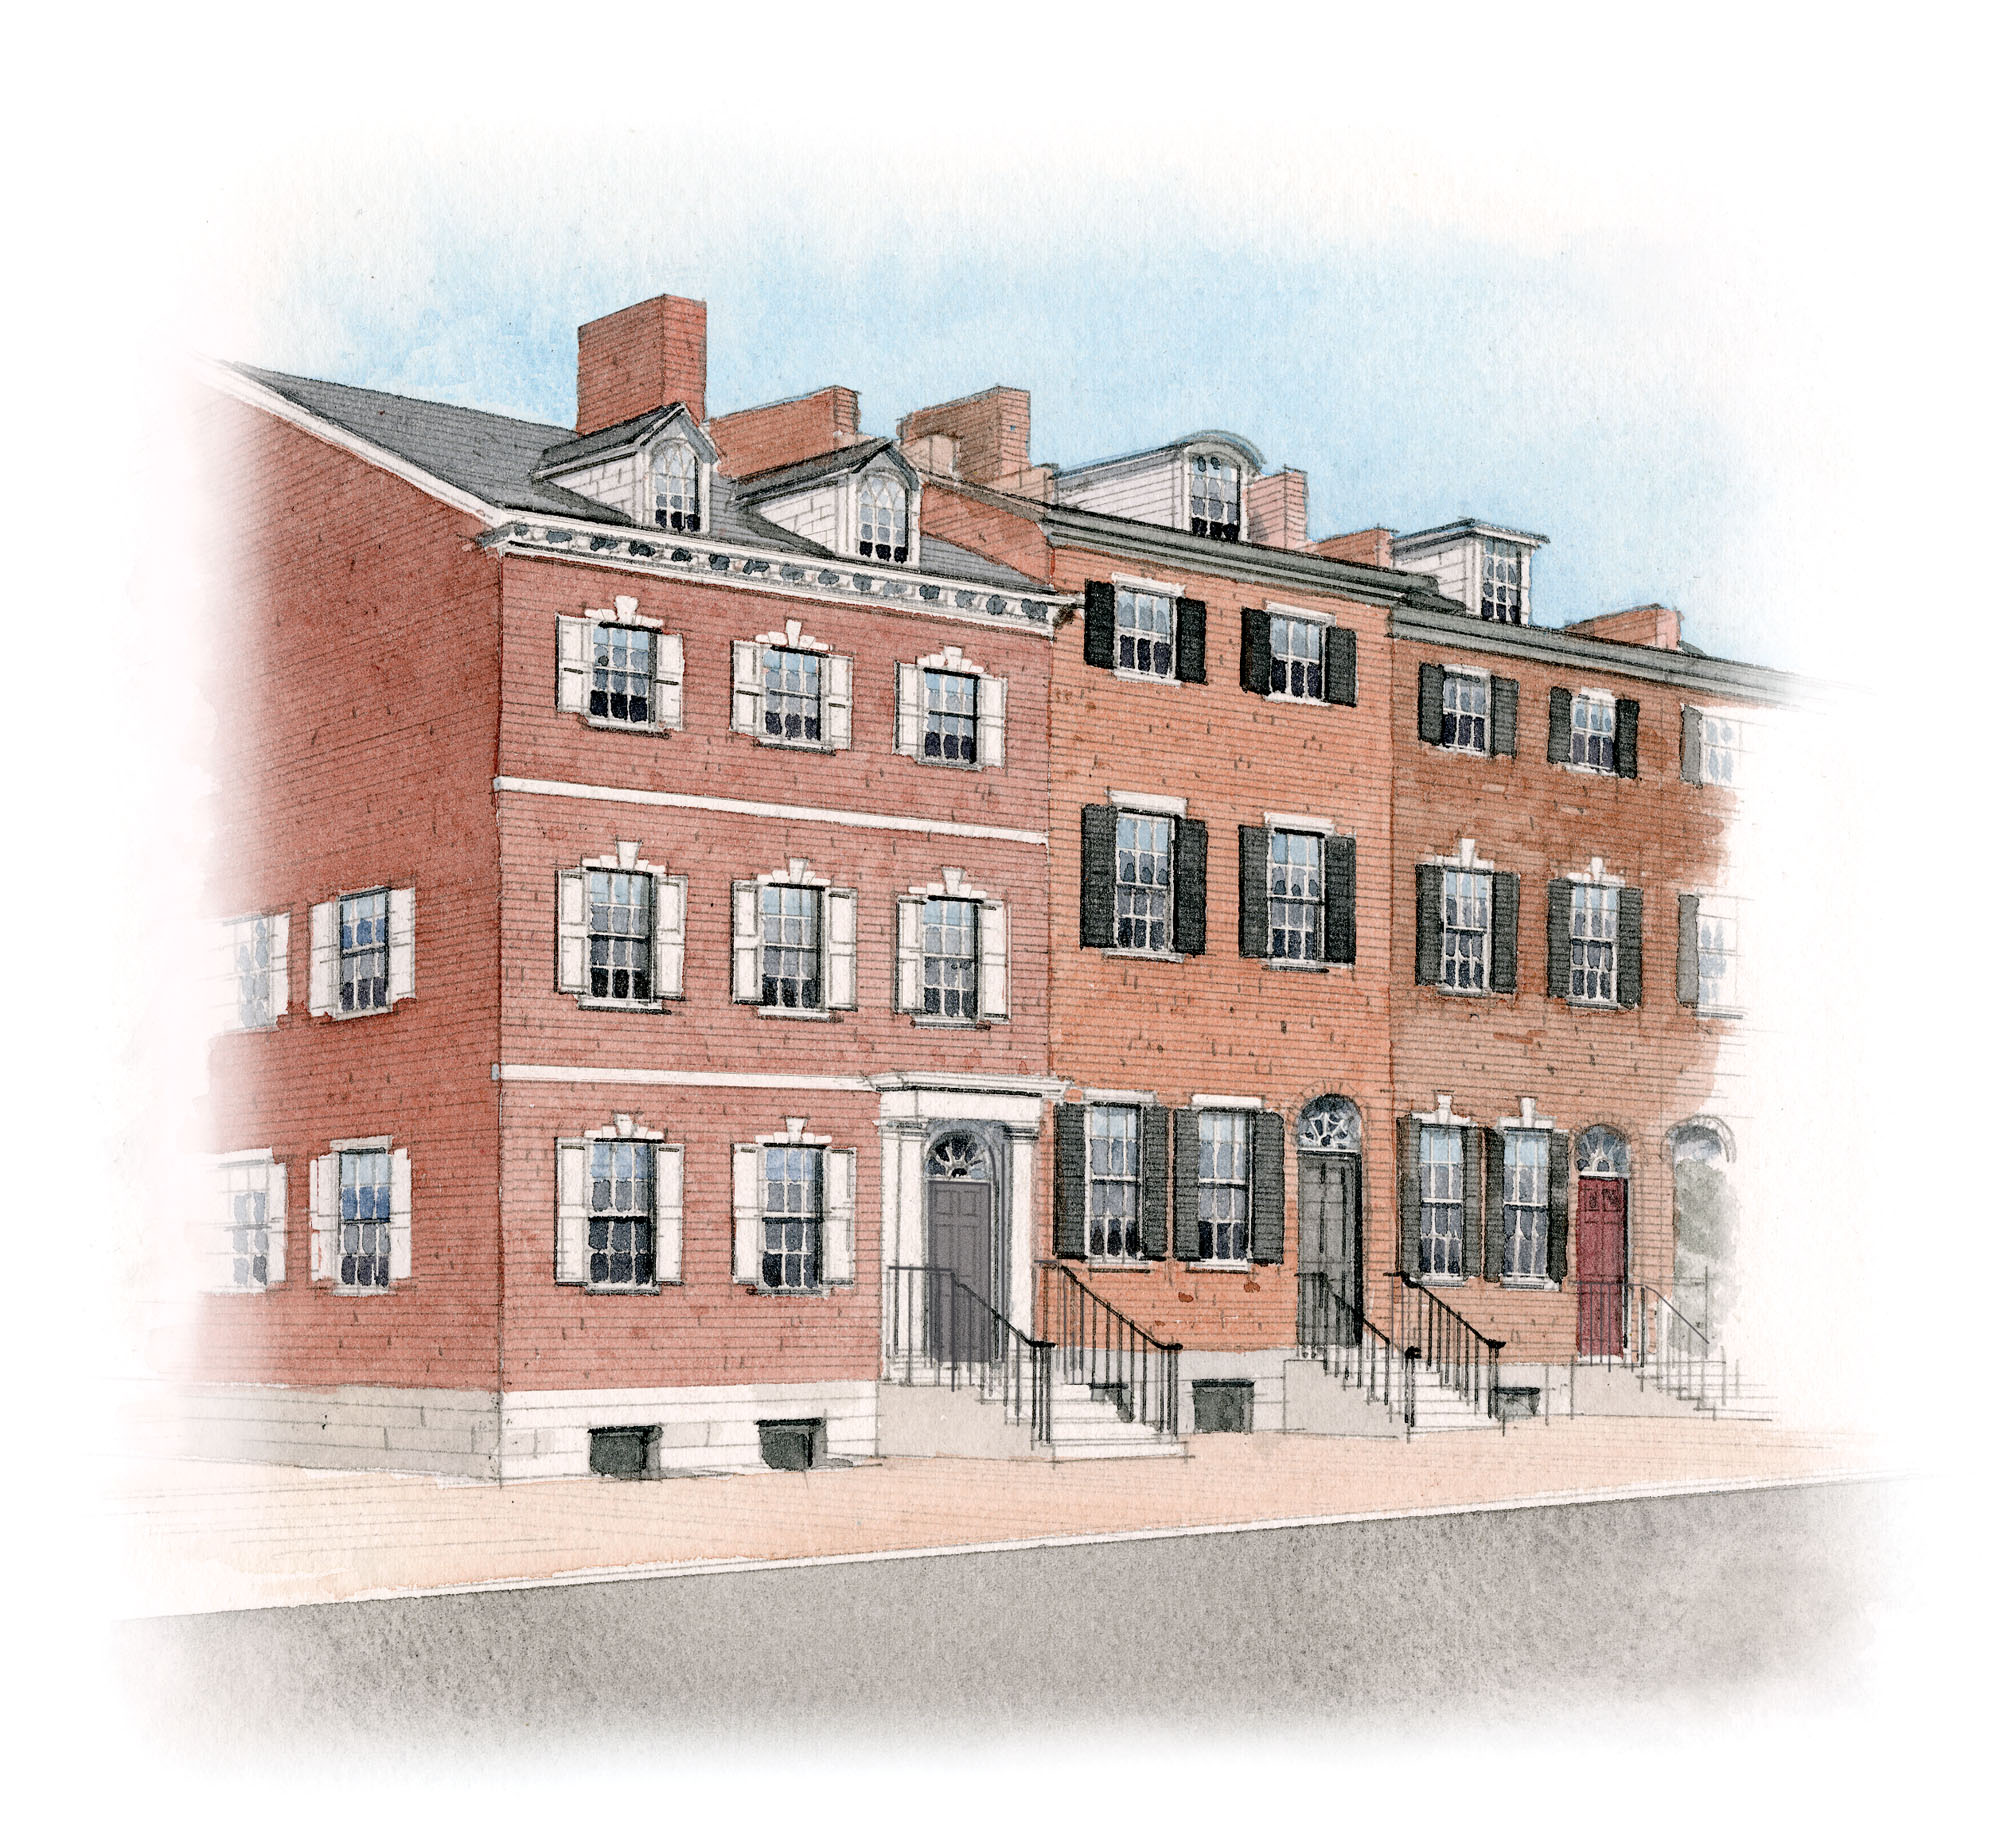 BRICK FEDERAL ROW HOUSES, 1810s